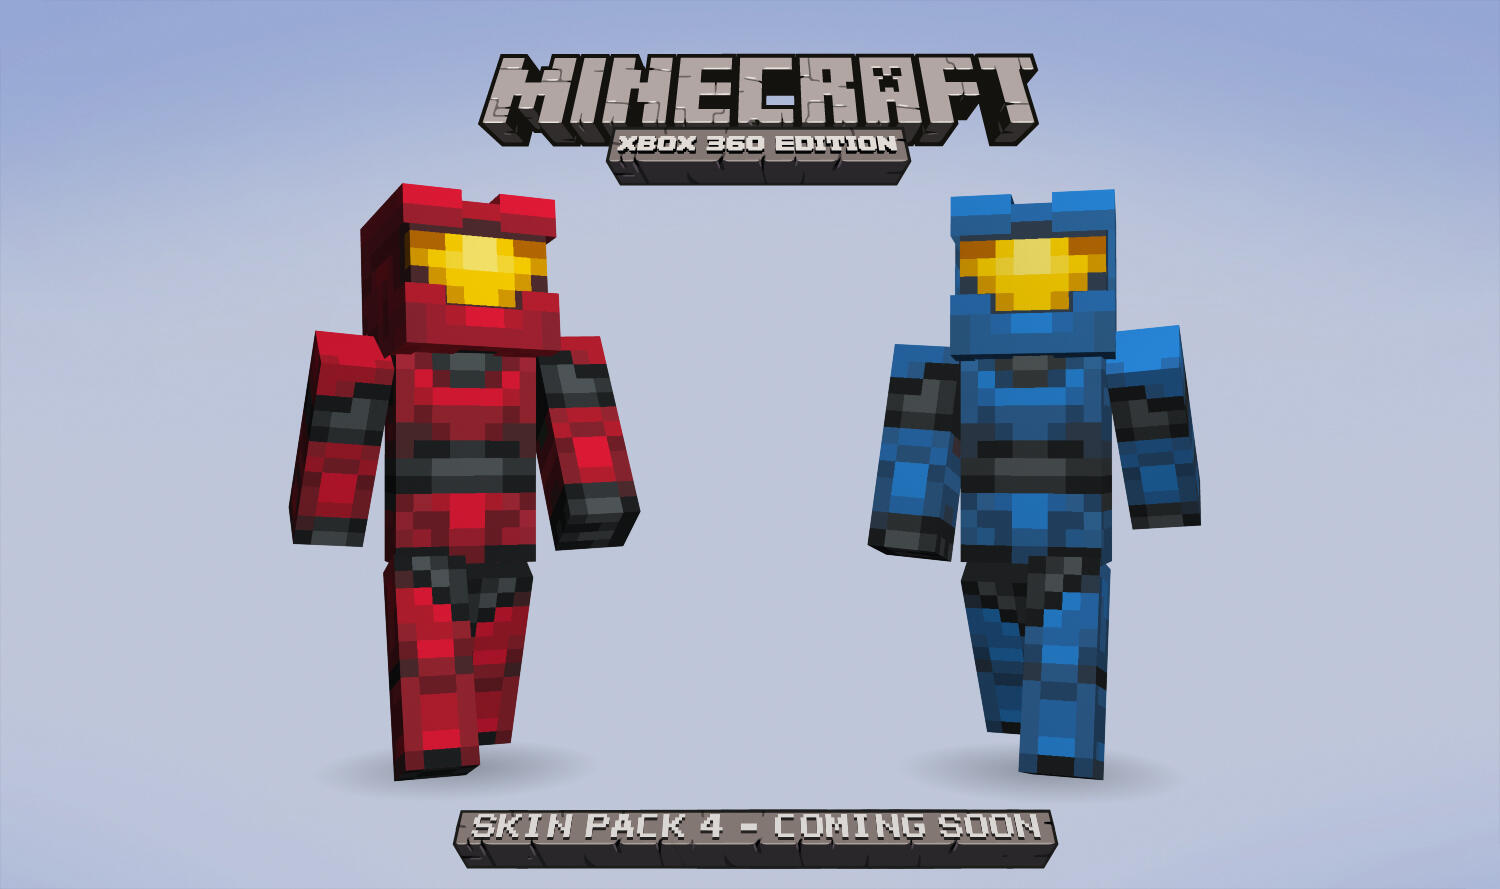 Red & Blue Spartans part of Skin Pack 4 for Minecraft: @Xbox 360 Edition (E10+). Out soon, watch @PlayXBLA for info. http://t.co/VM39oGNHlG